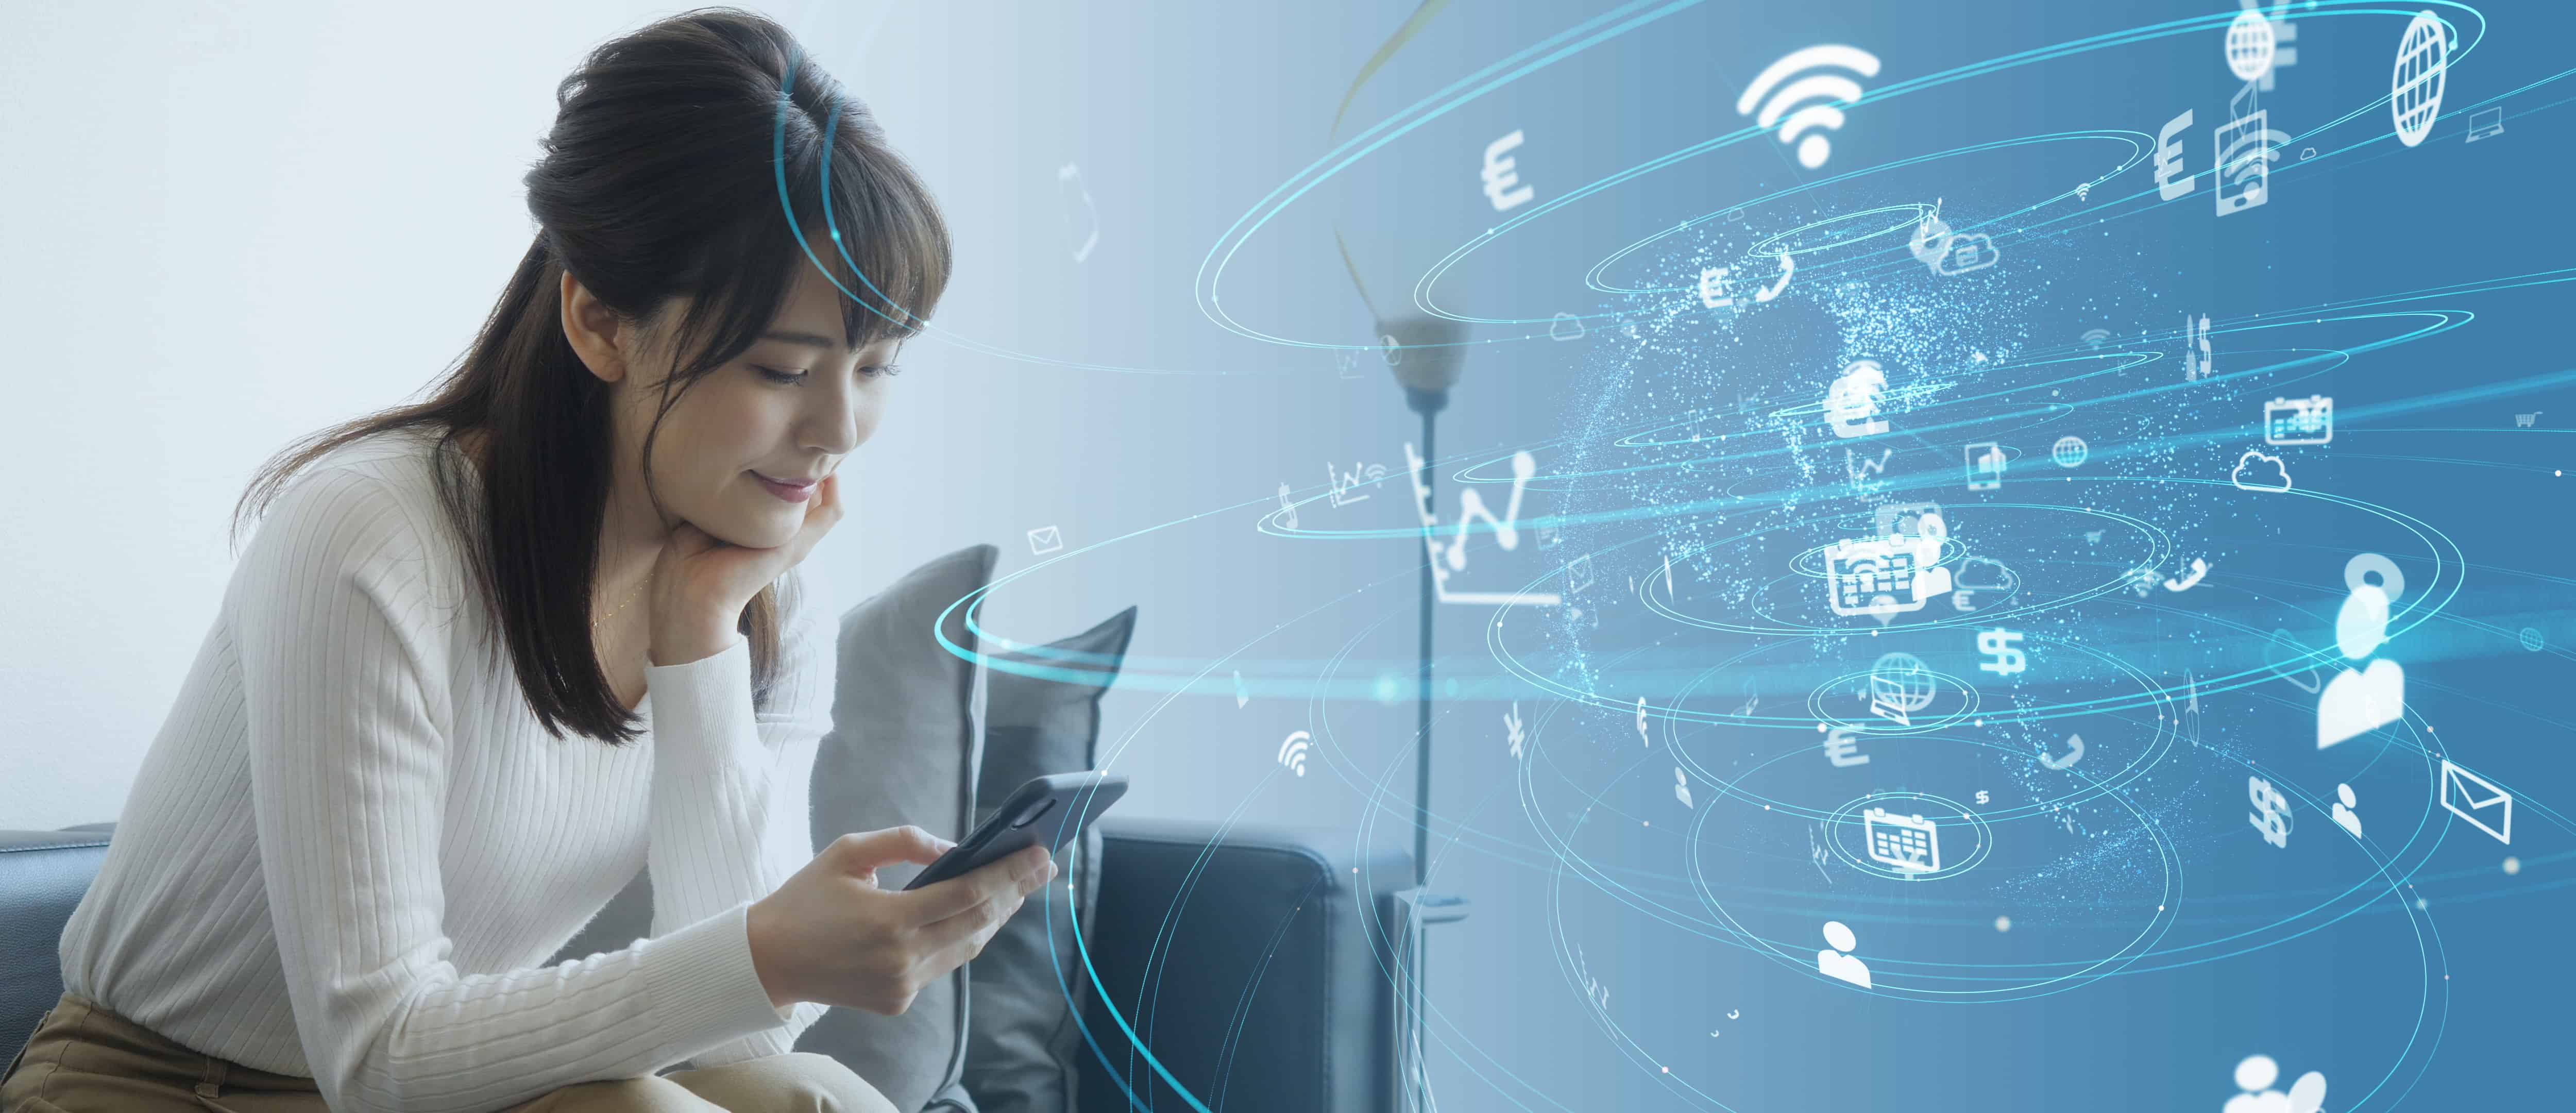 What does 5G mean for IoT?